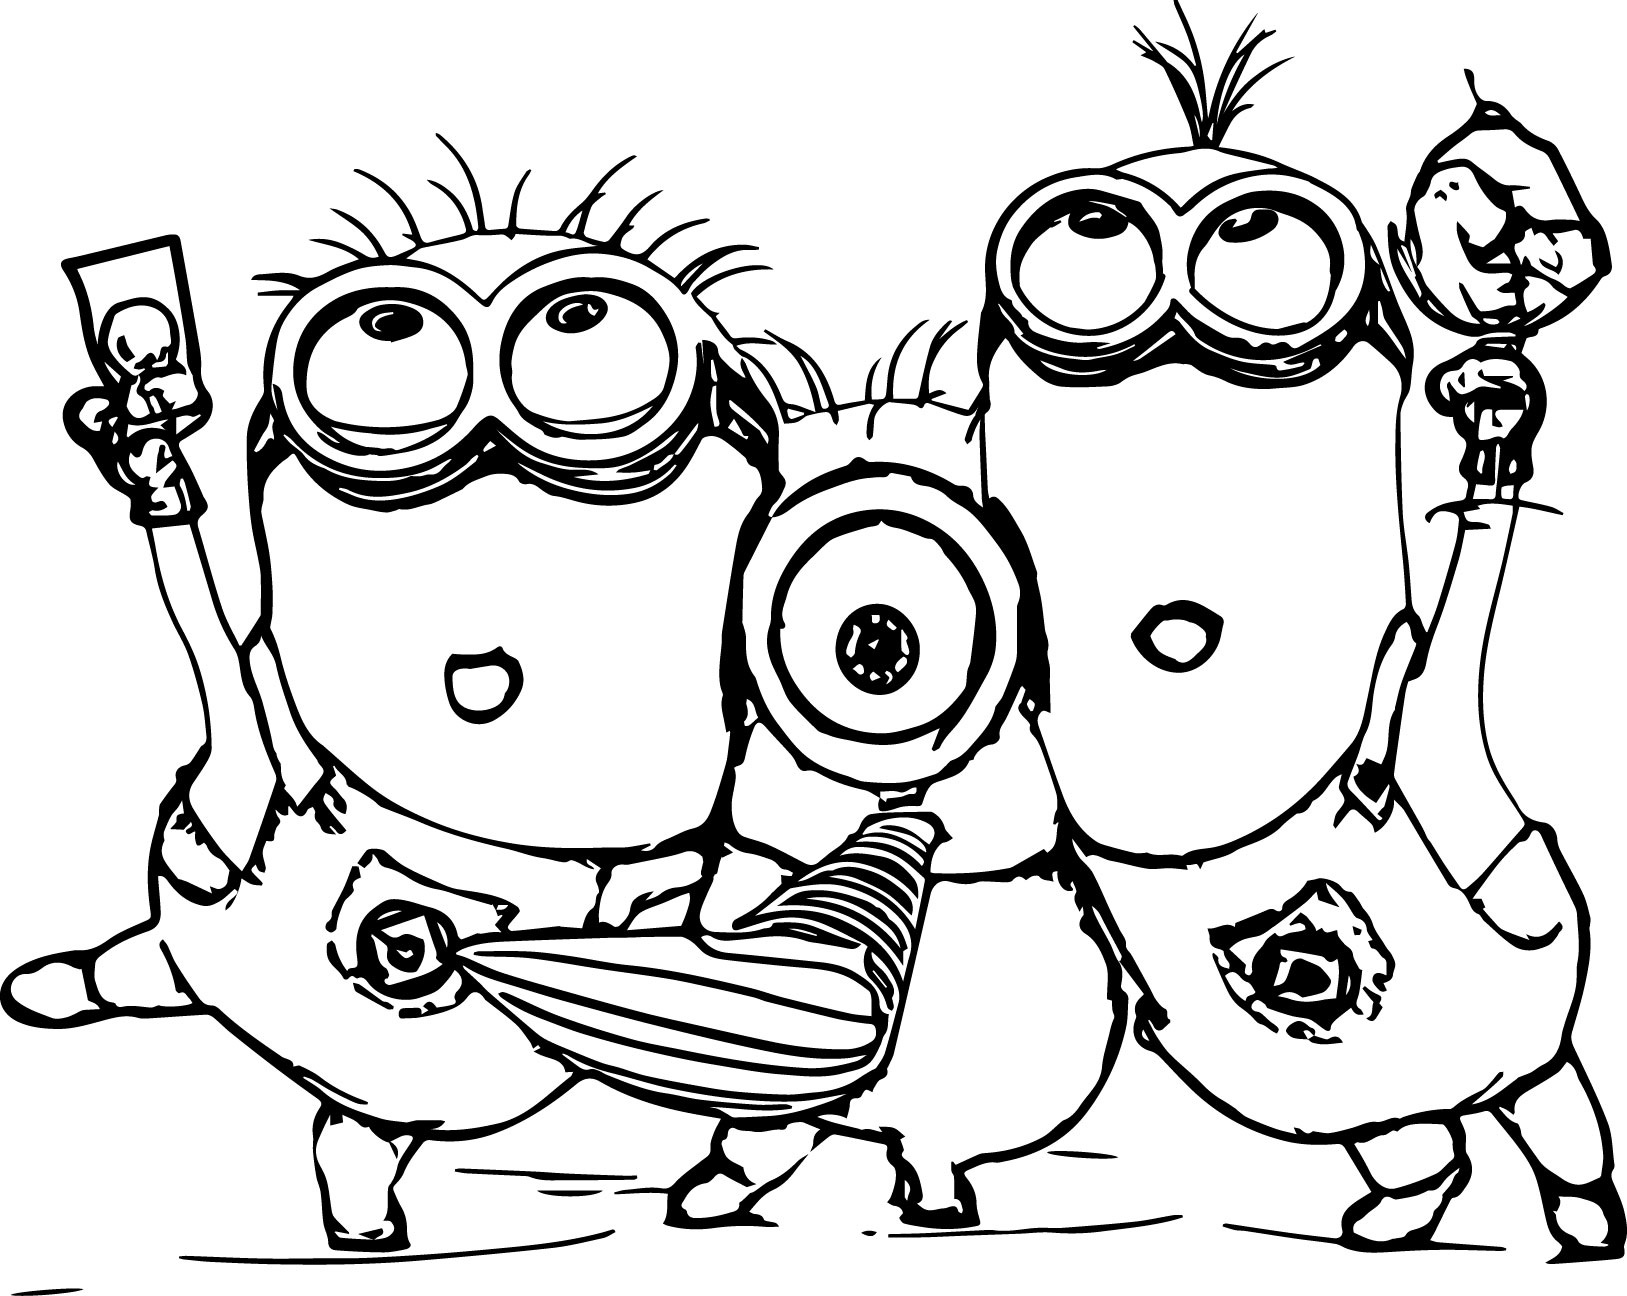 1627x1296 despicable me 2 minions coloring page wecoloringpage - Despicable Me Coloring Pages Free 2